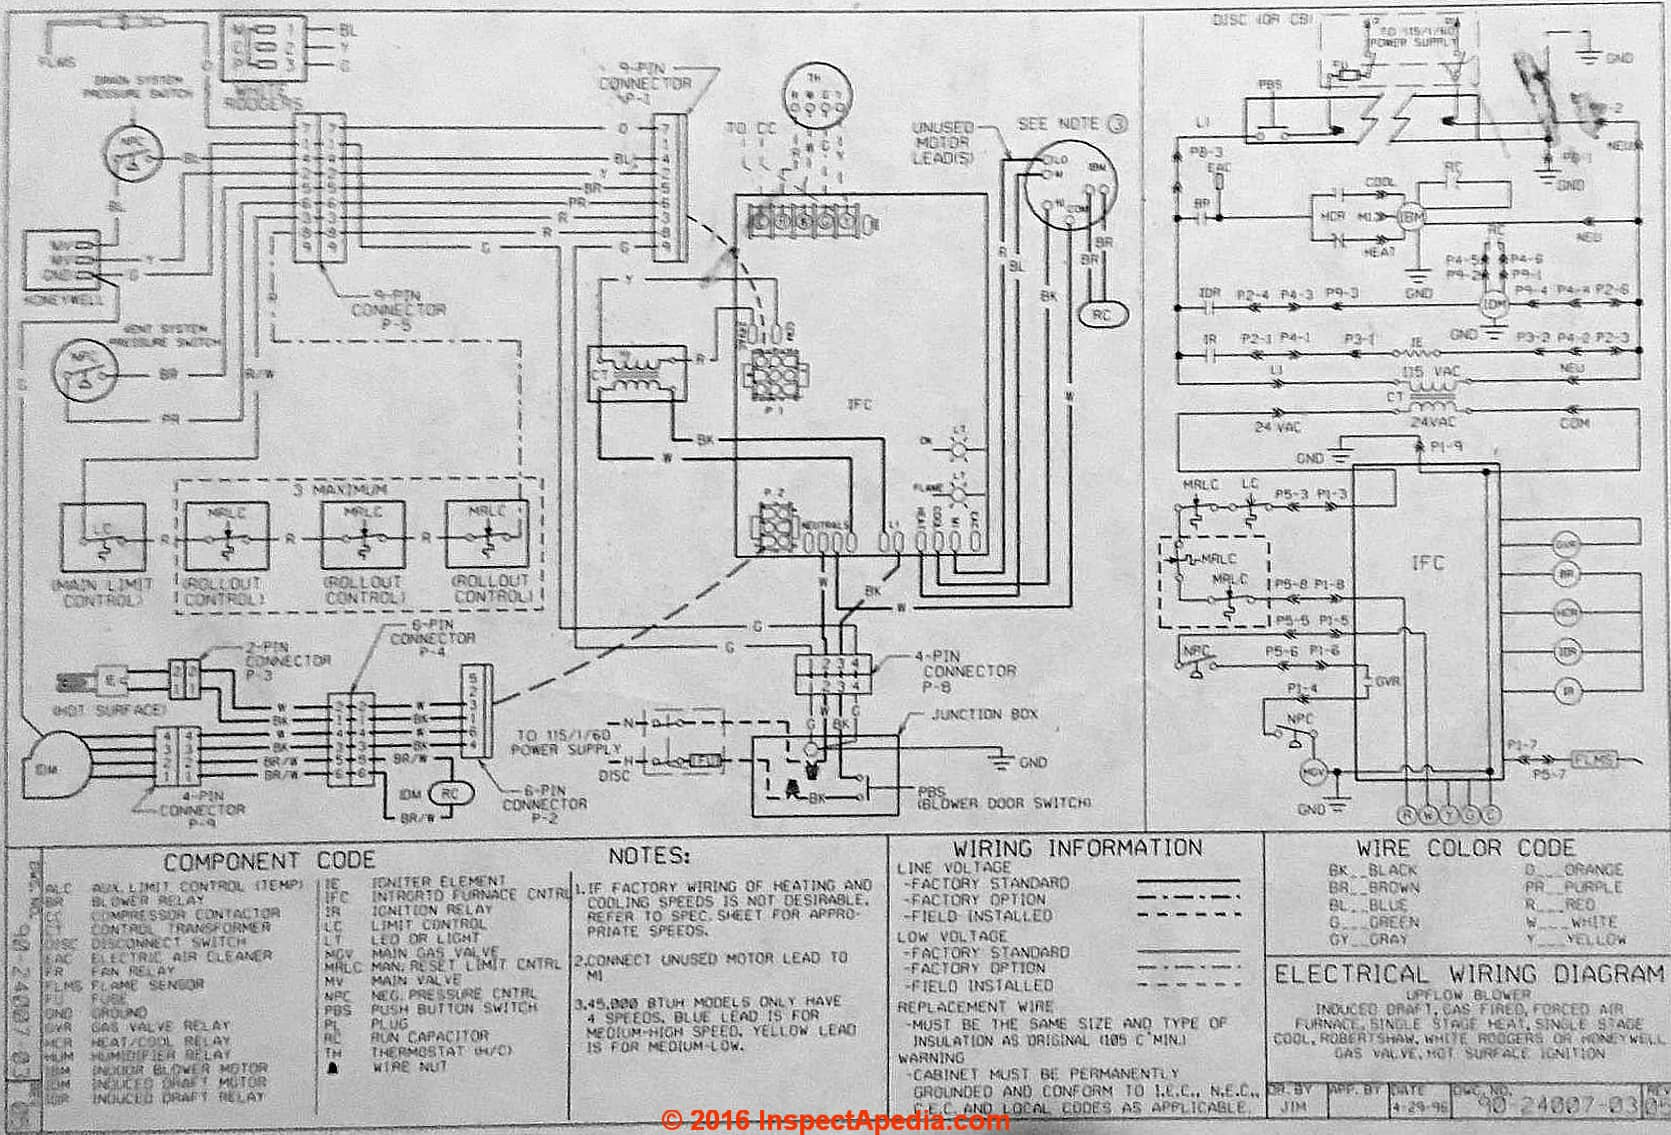 Rheem_AHU_Wiring_Diagram_IAP package unit wiring diagram a c relay wiring diagram \u2022 free wiring rheem package unit wiring diagram at mifinder.co